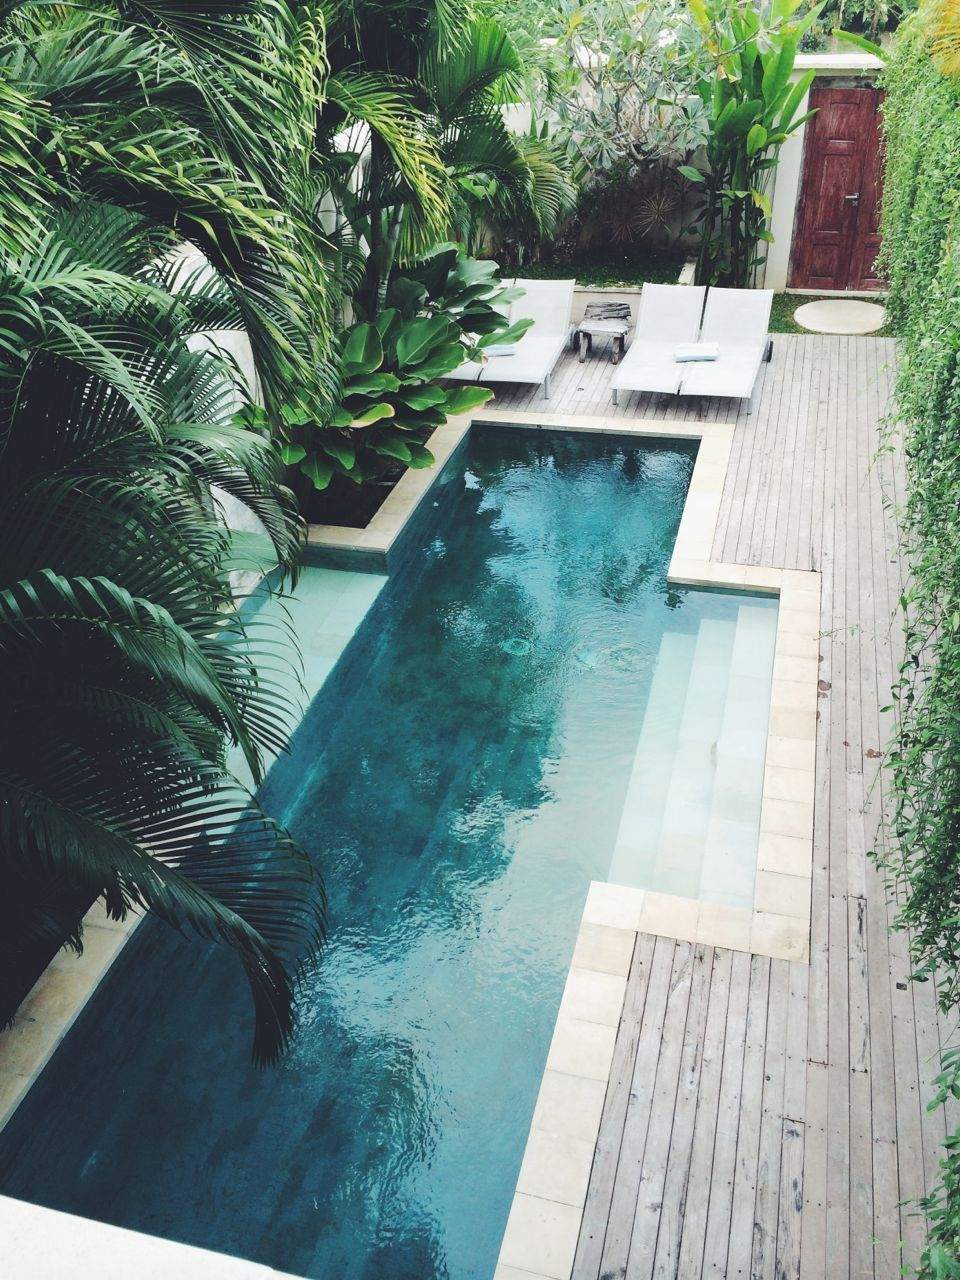 Love that the pool takes up the majority of its own courtyard